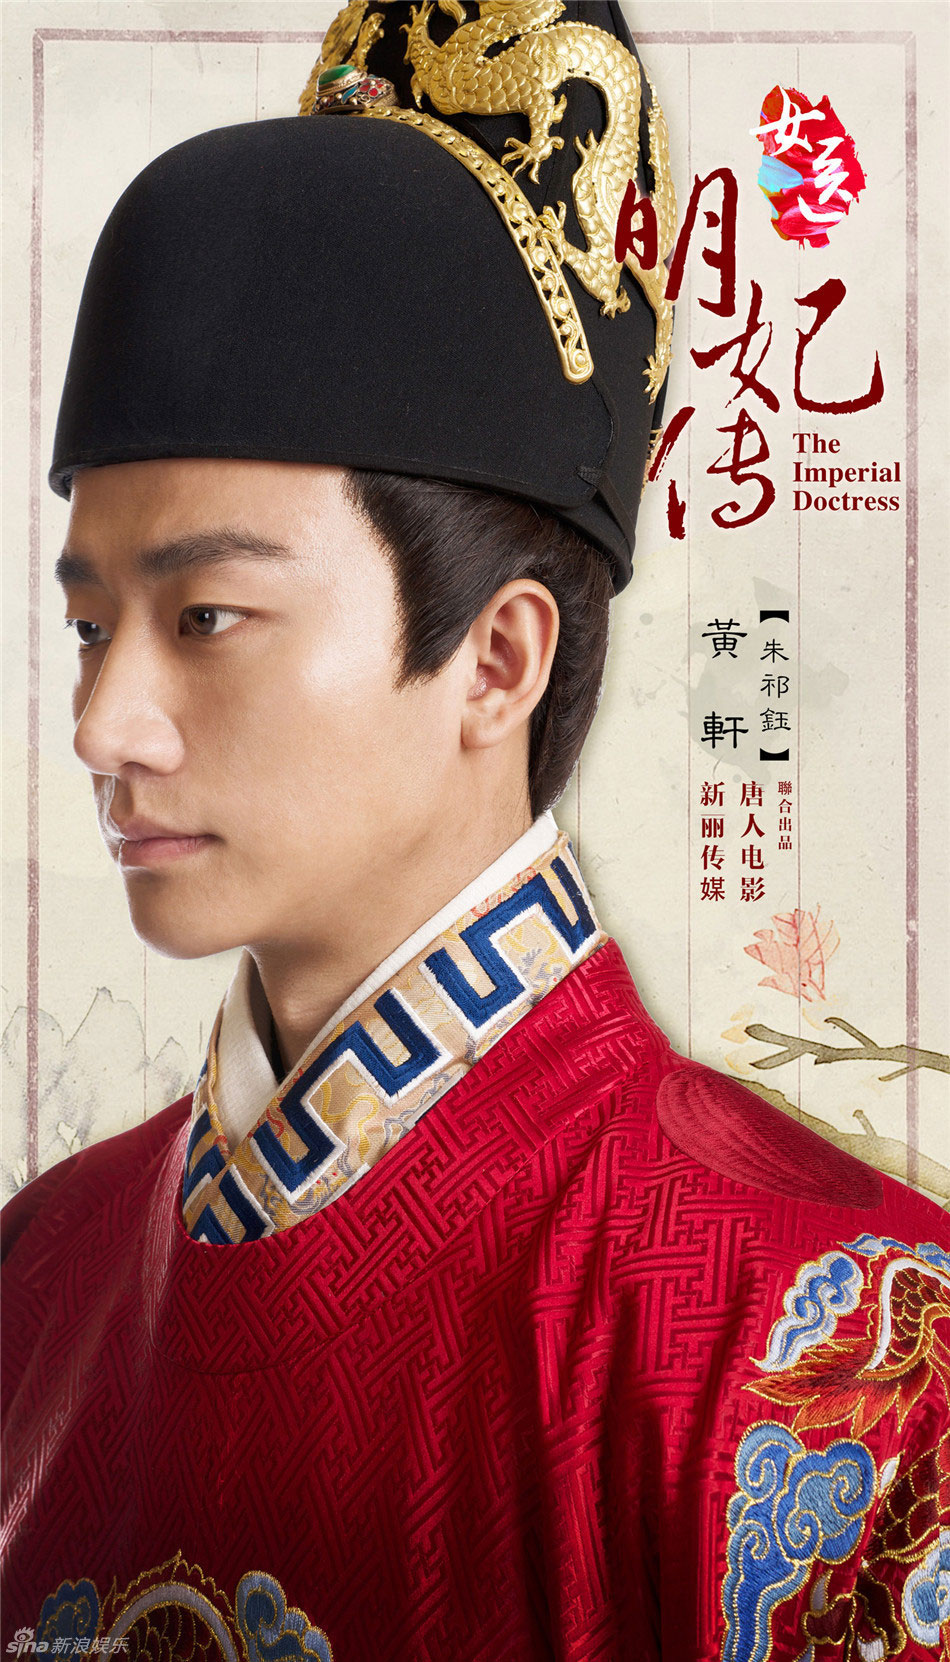 Huang Xuan Imperial Doctress Chinese drama